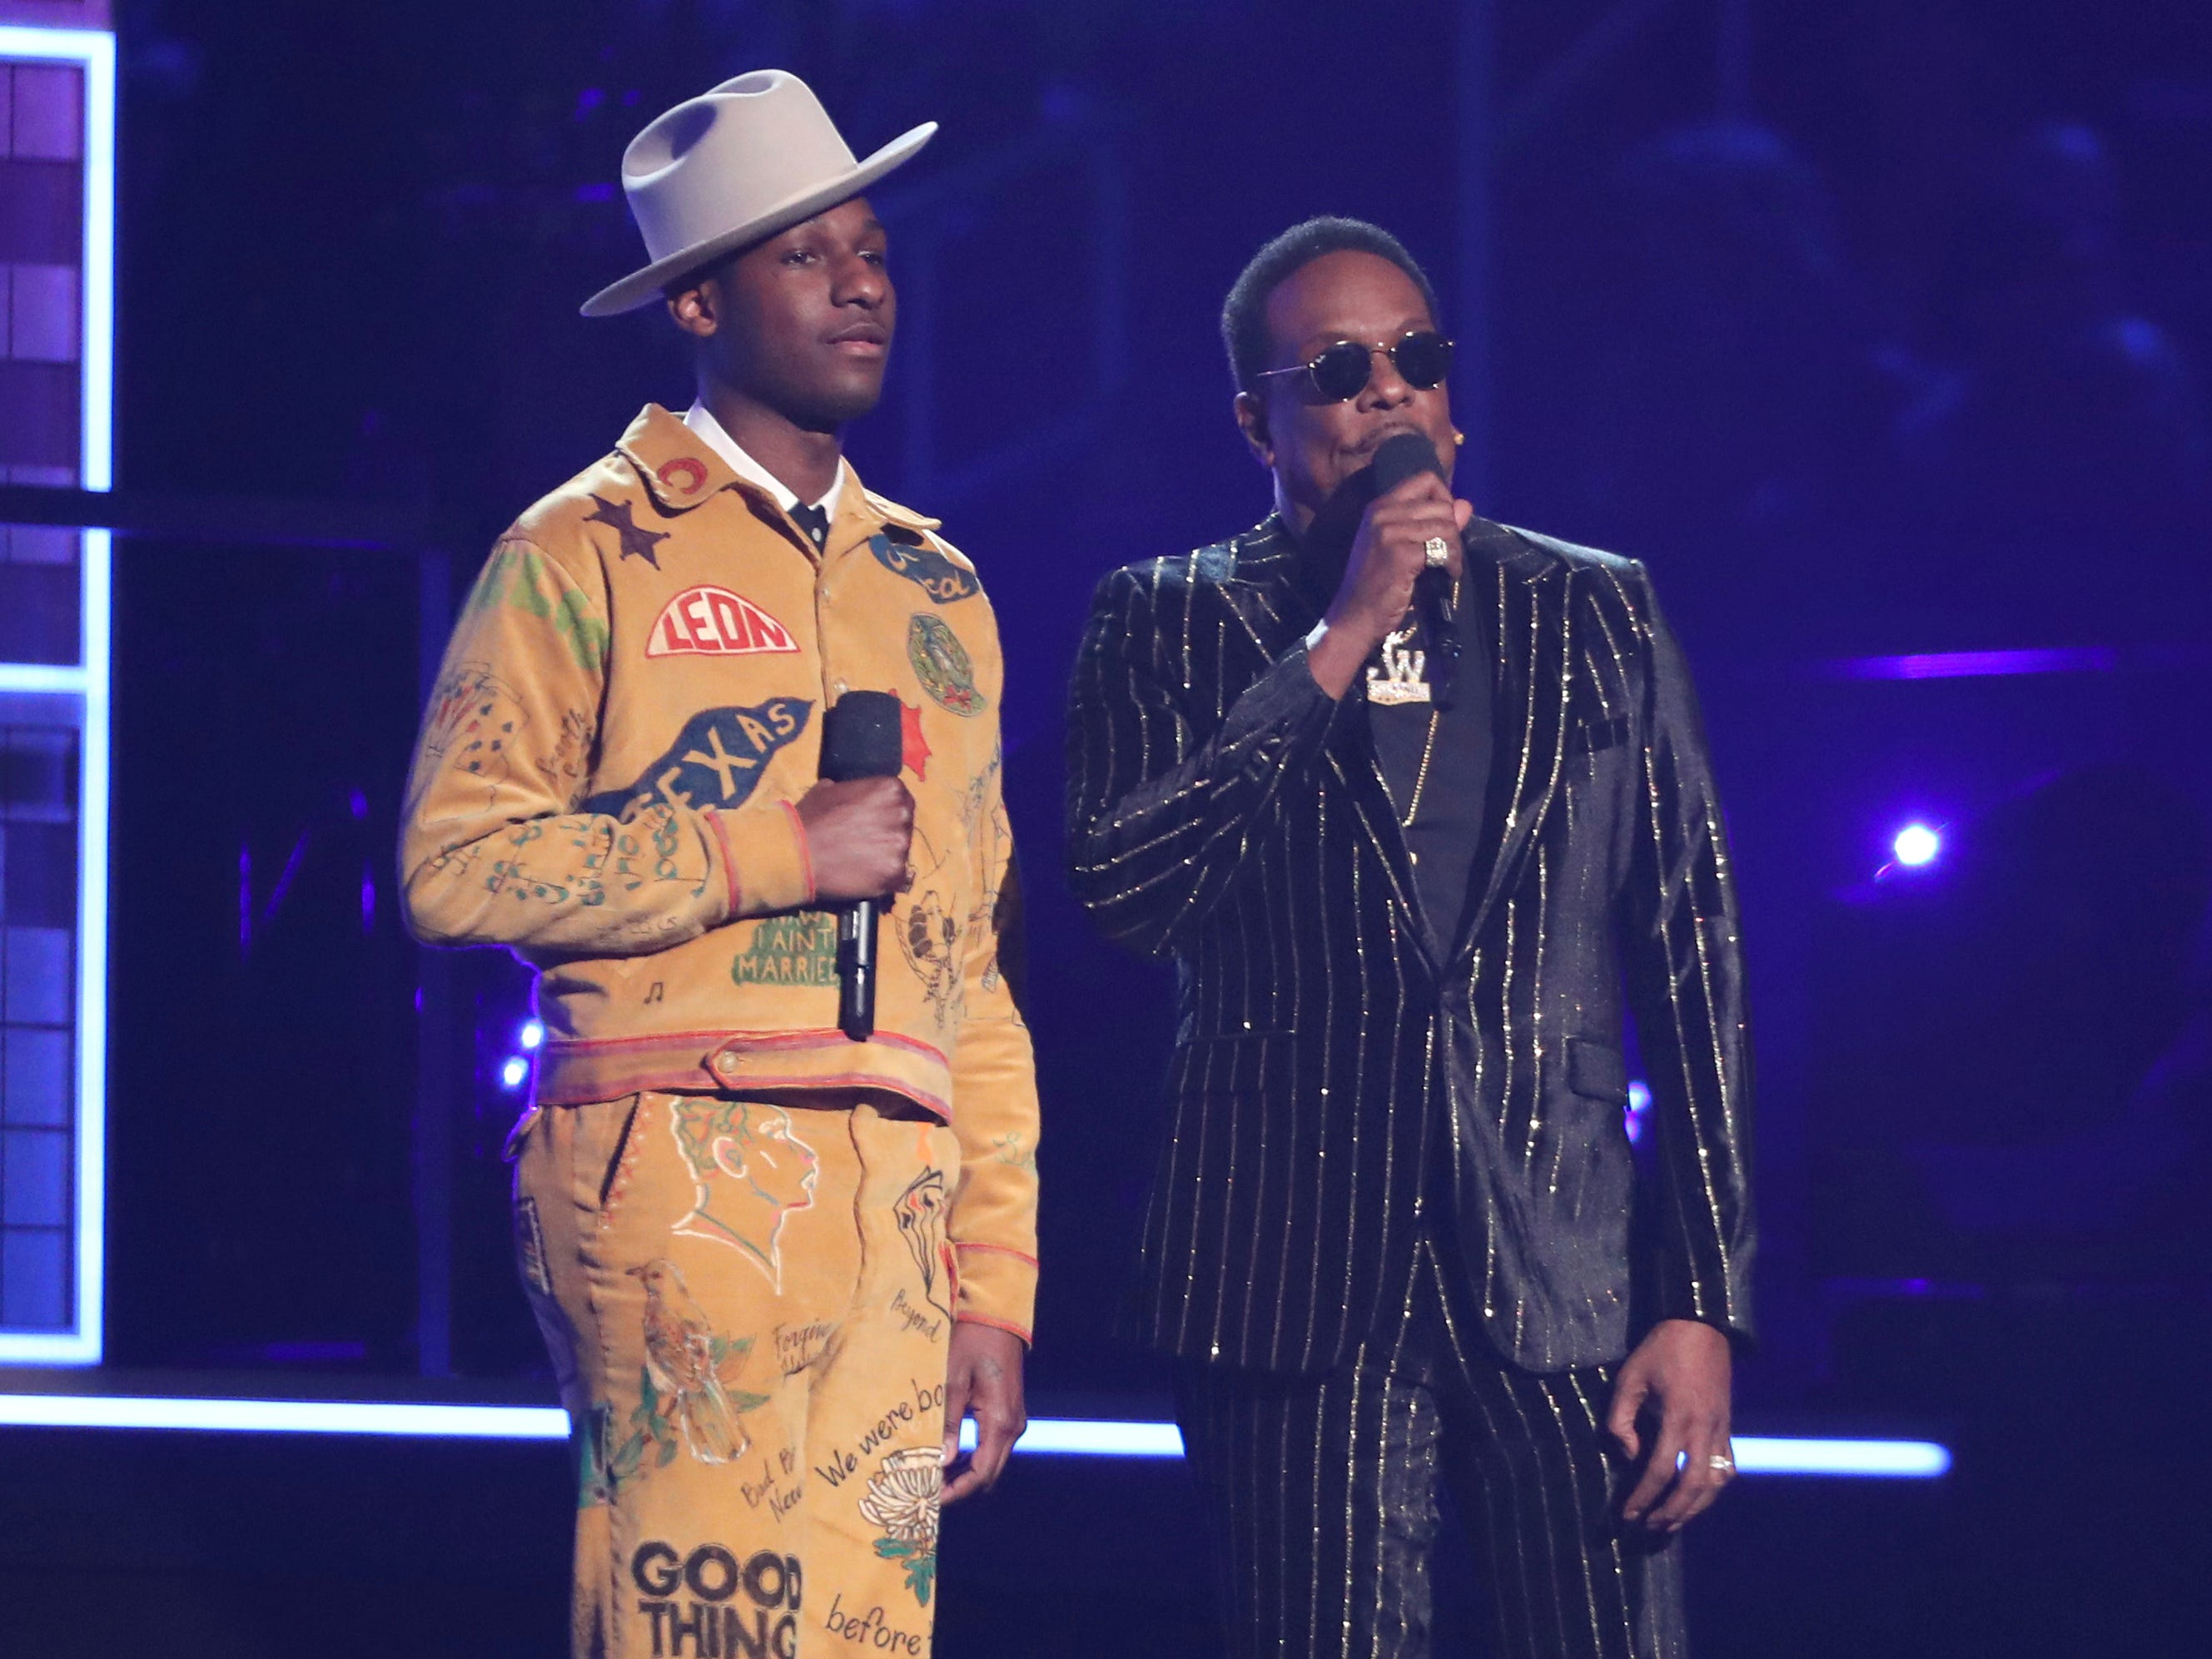 Leon Bridges, left, and Charlie Wilson introduce a performance at the 61st annual Grammy Awards on Sunday, Feb. 10, 2019, in Los Angeles.